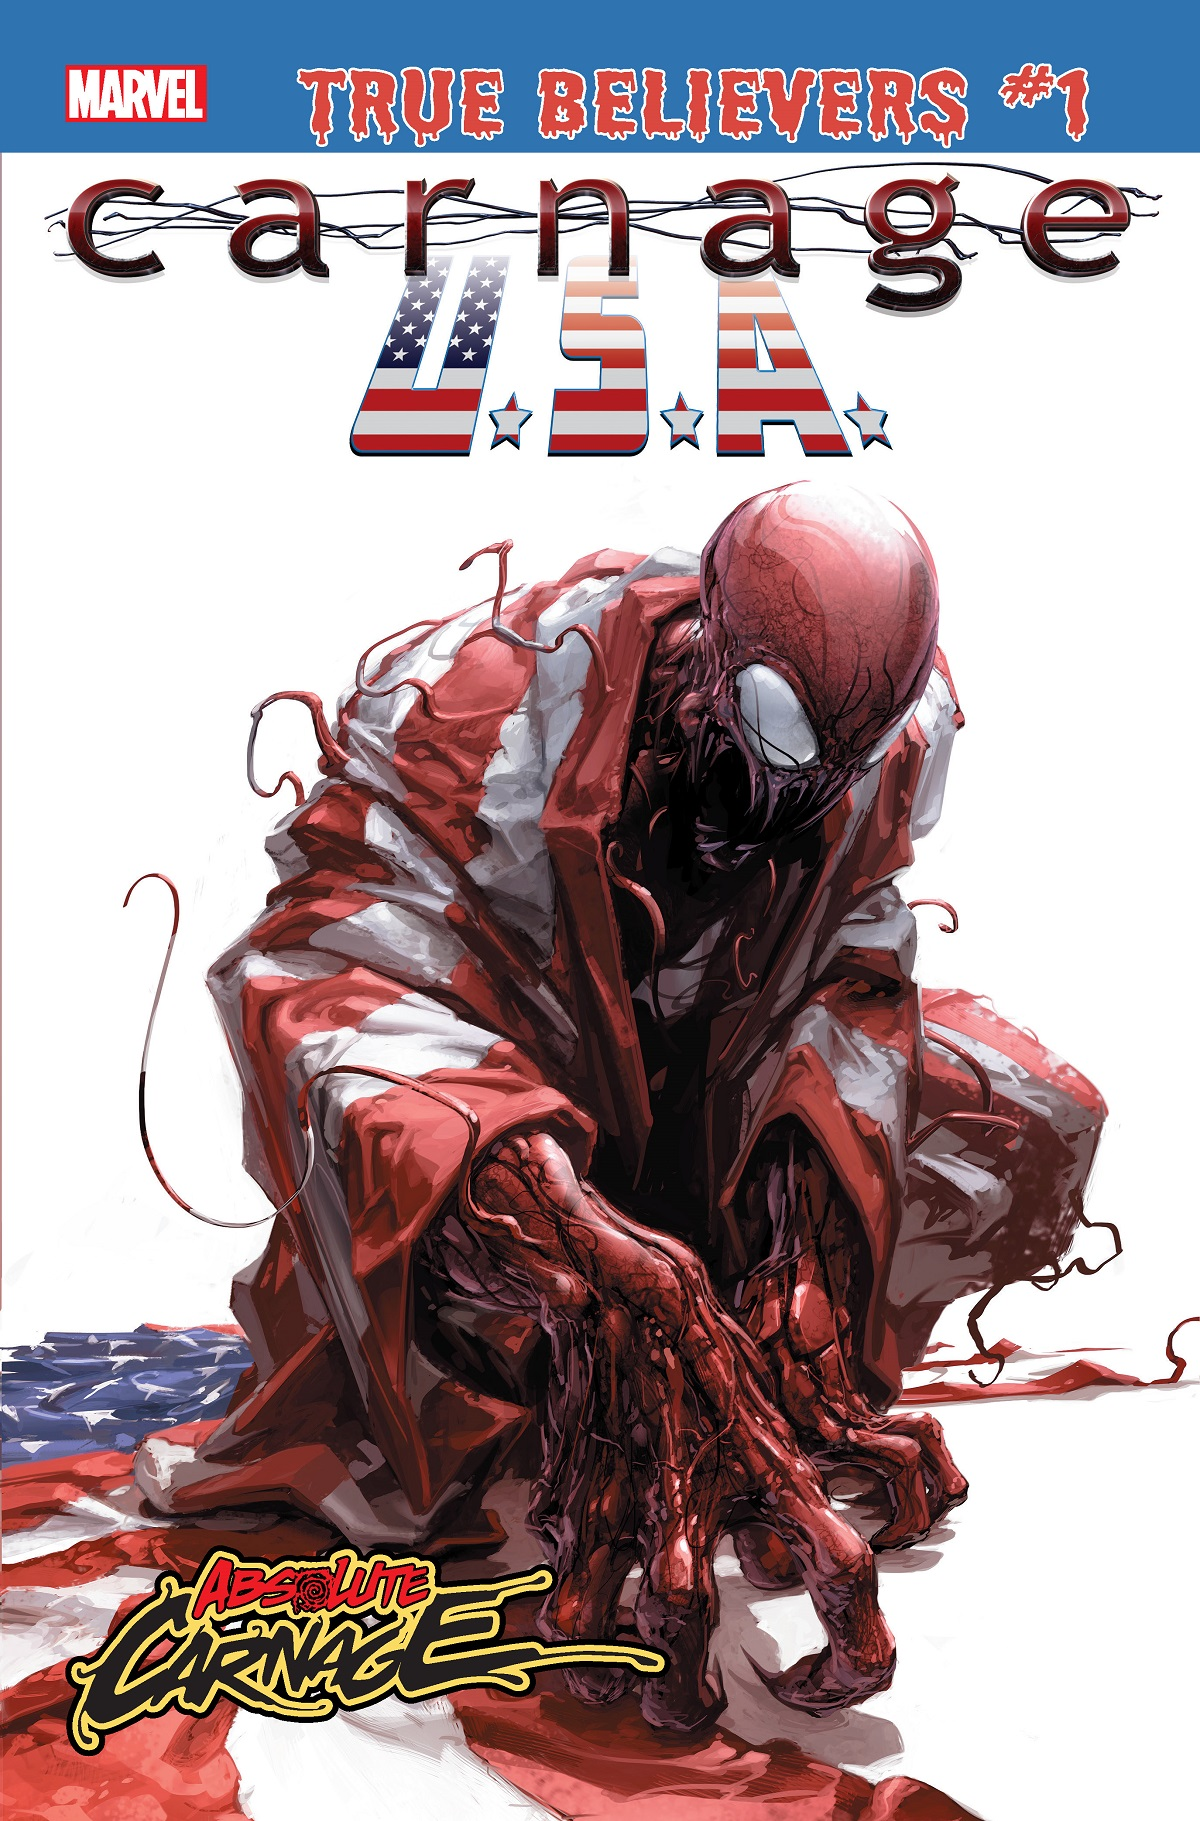 True Believers: Absolute Carnage - Carnage, U.S.A. (2019) #1